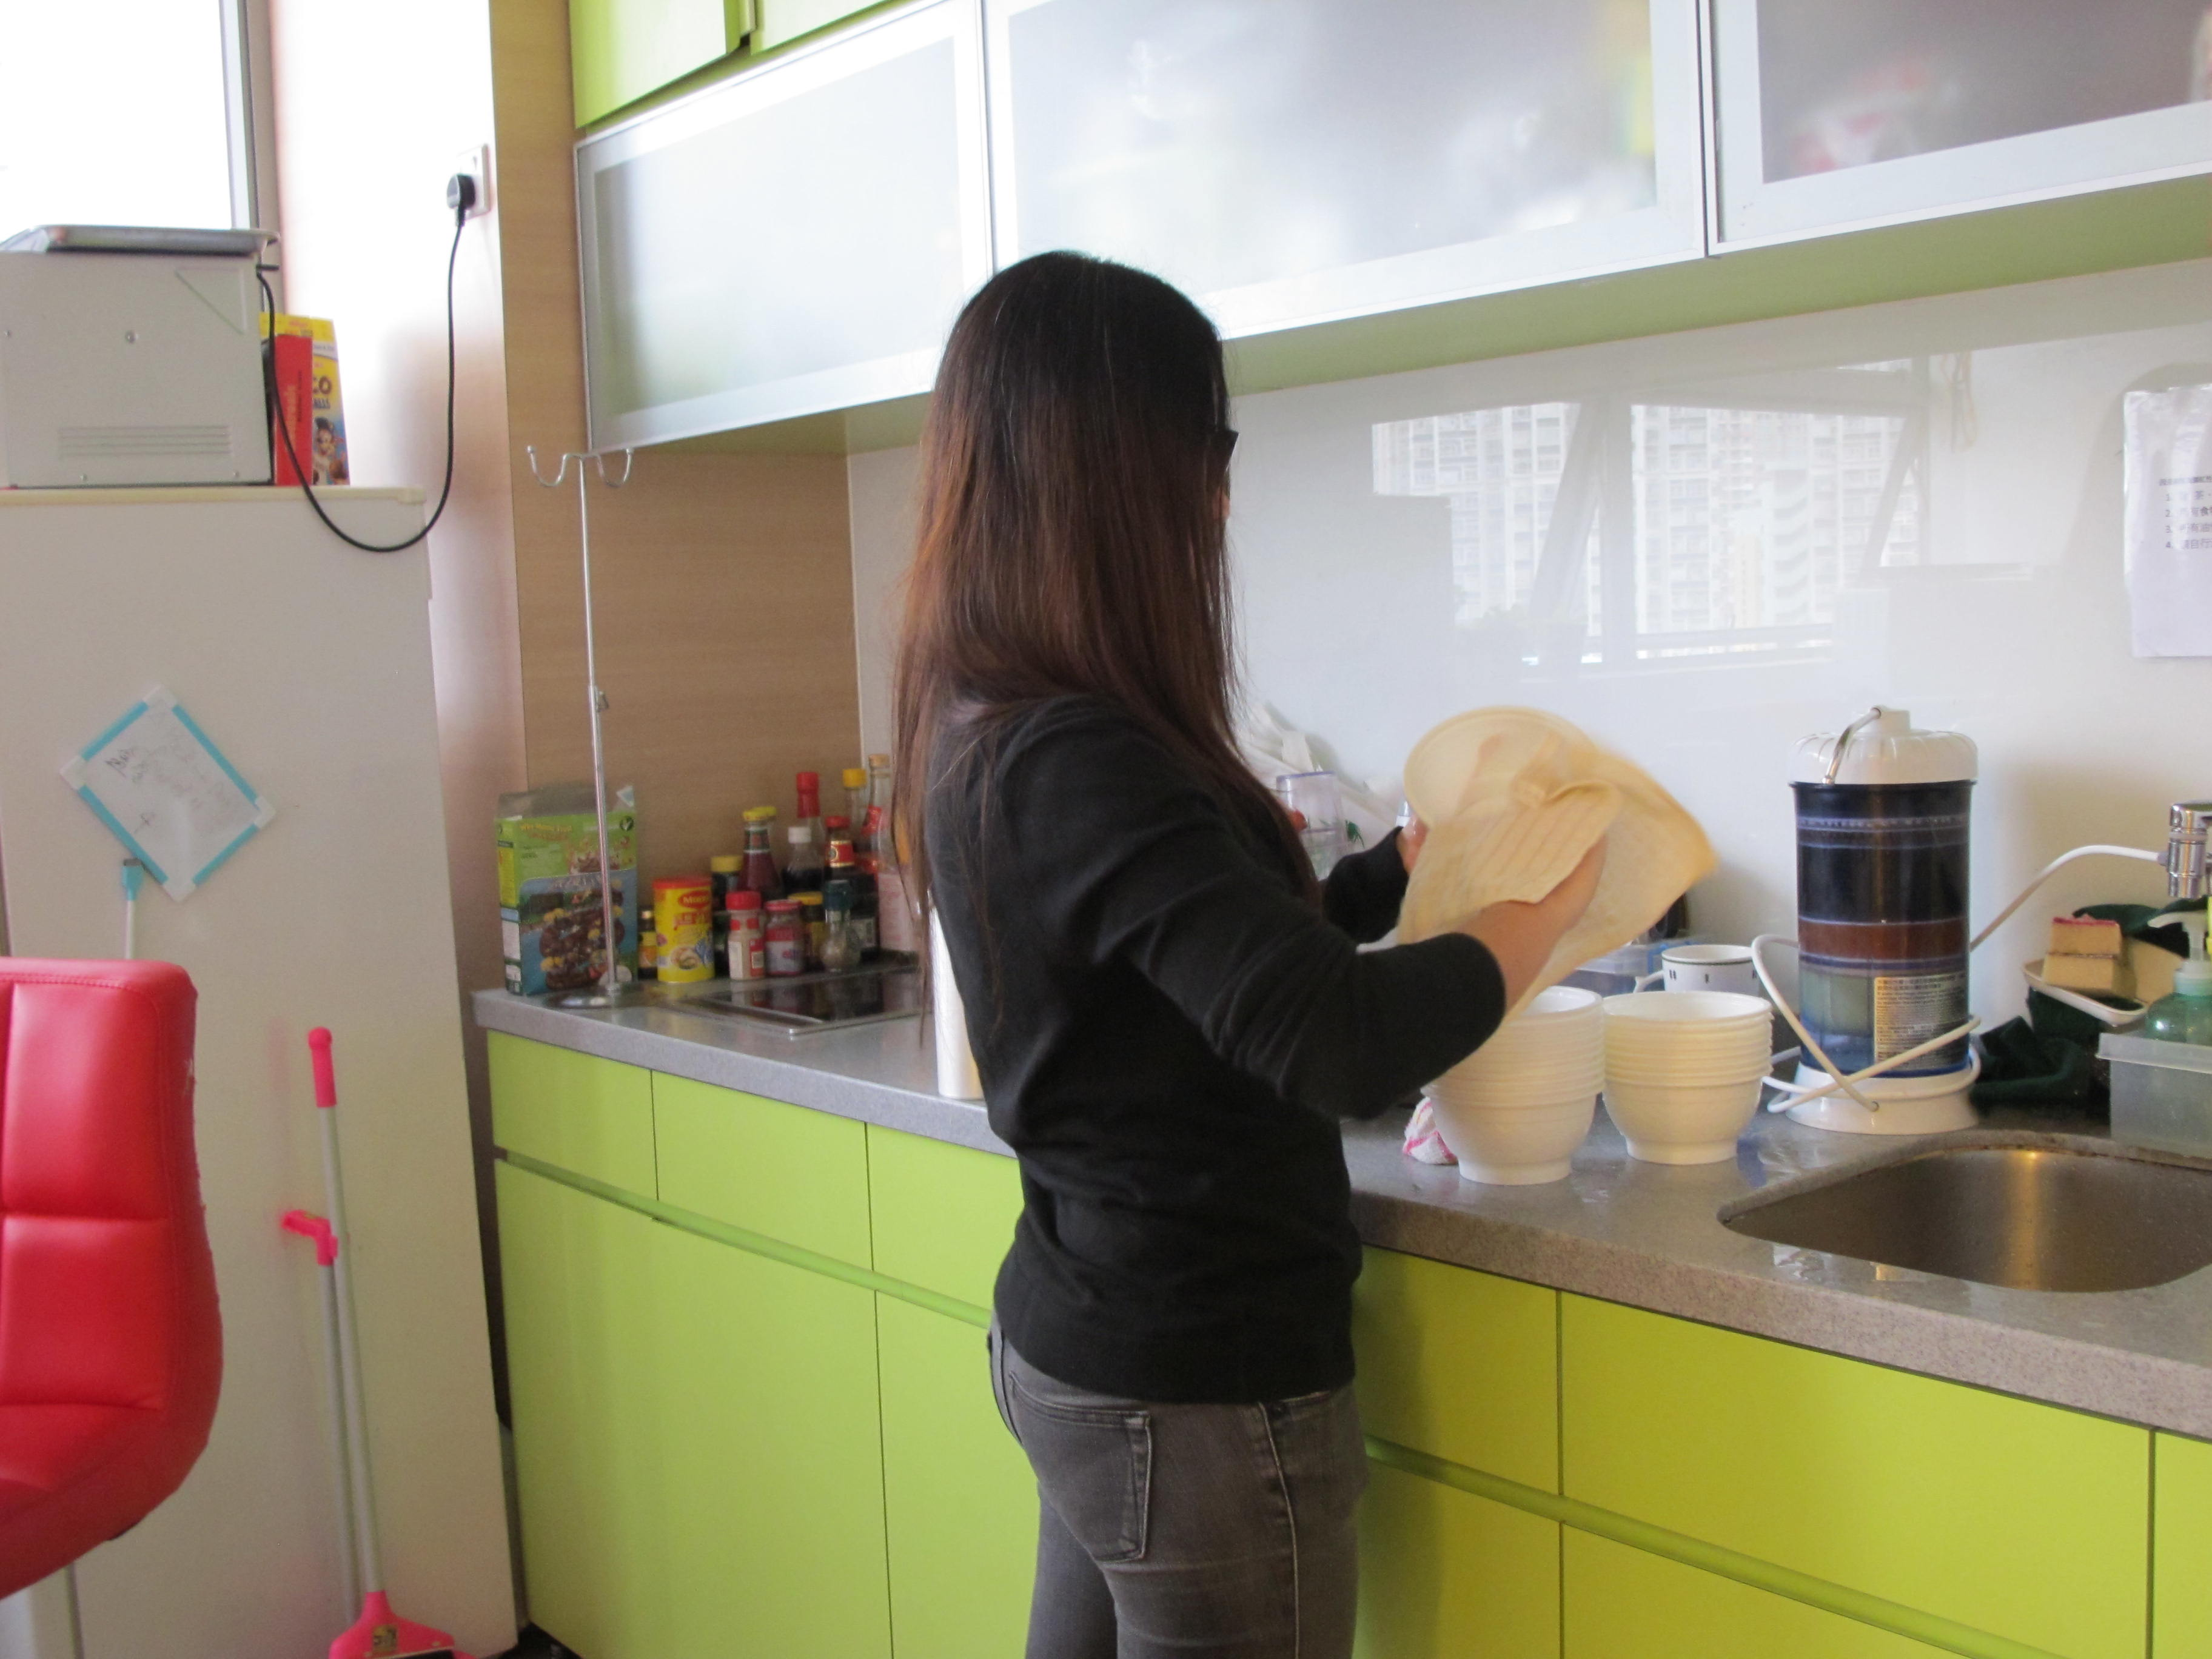 United Christian Nethersole Community Health Service Project -- 餐餐智慳嚐有營 - Photo - 13